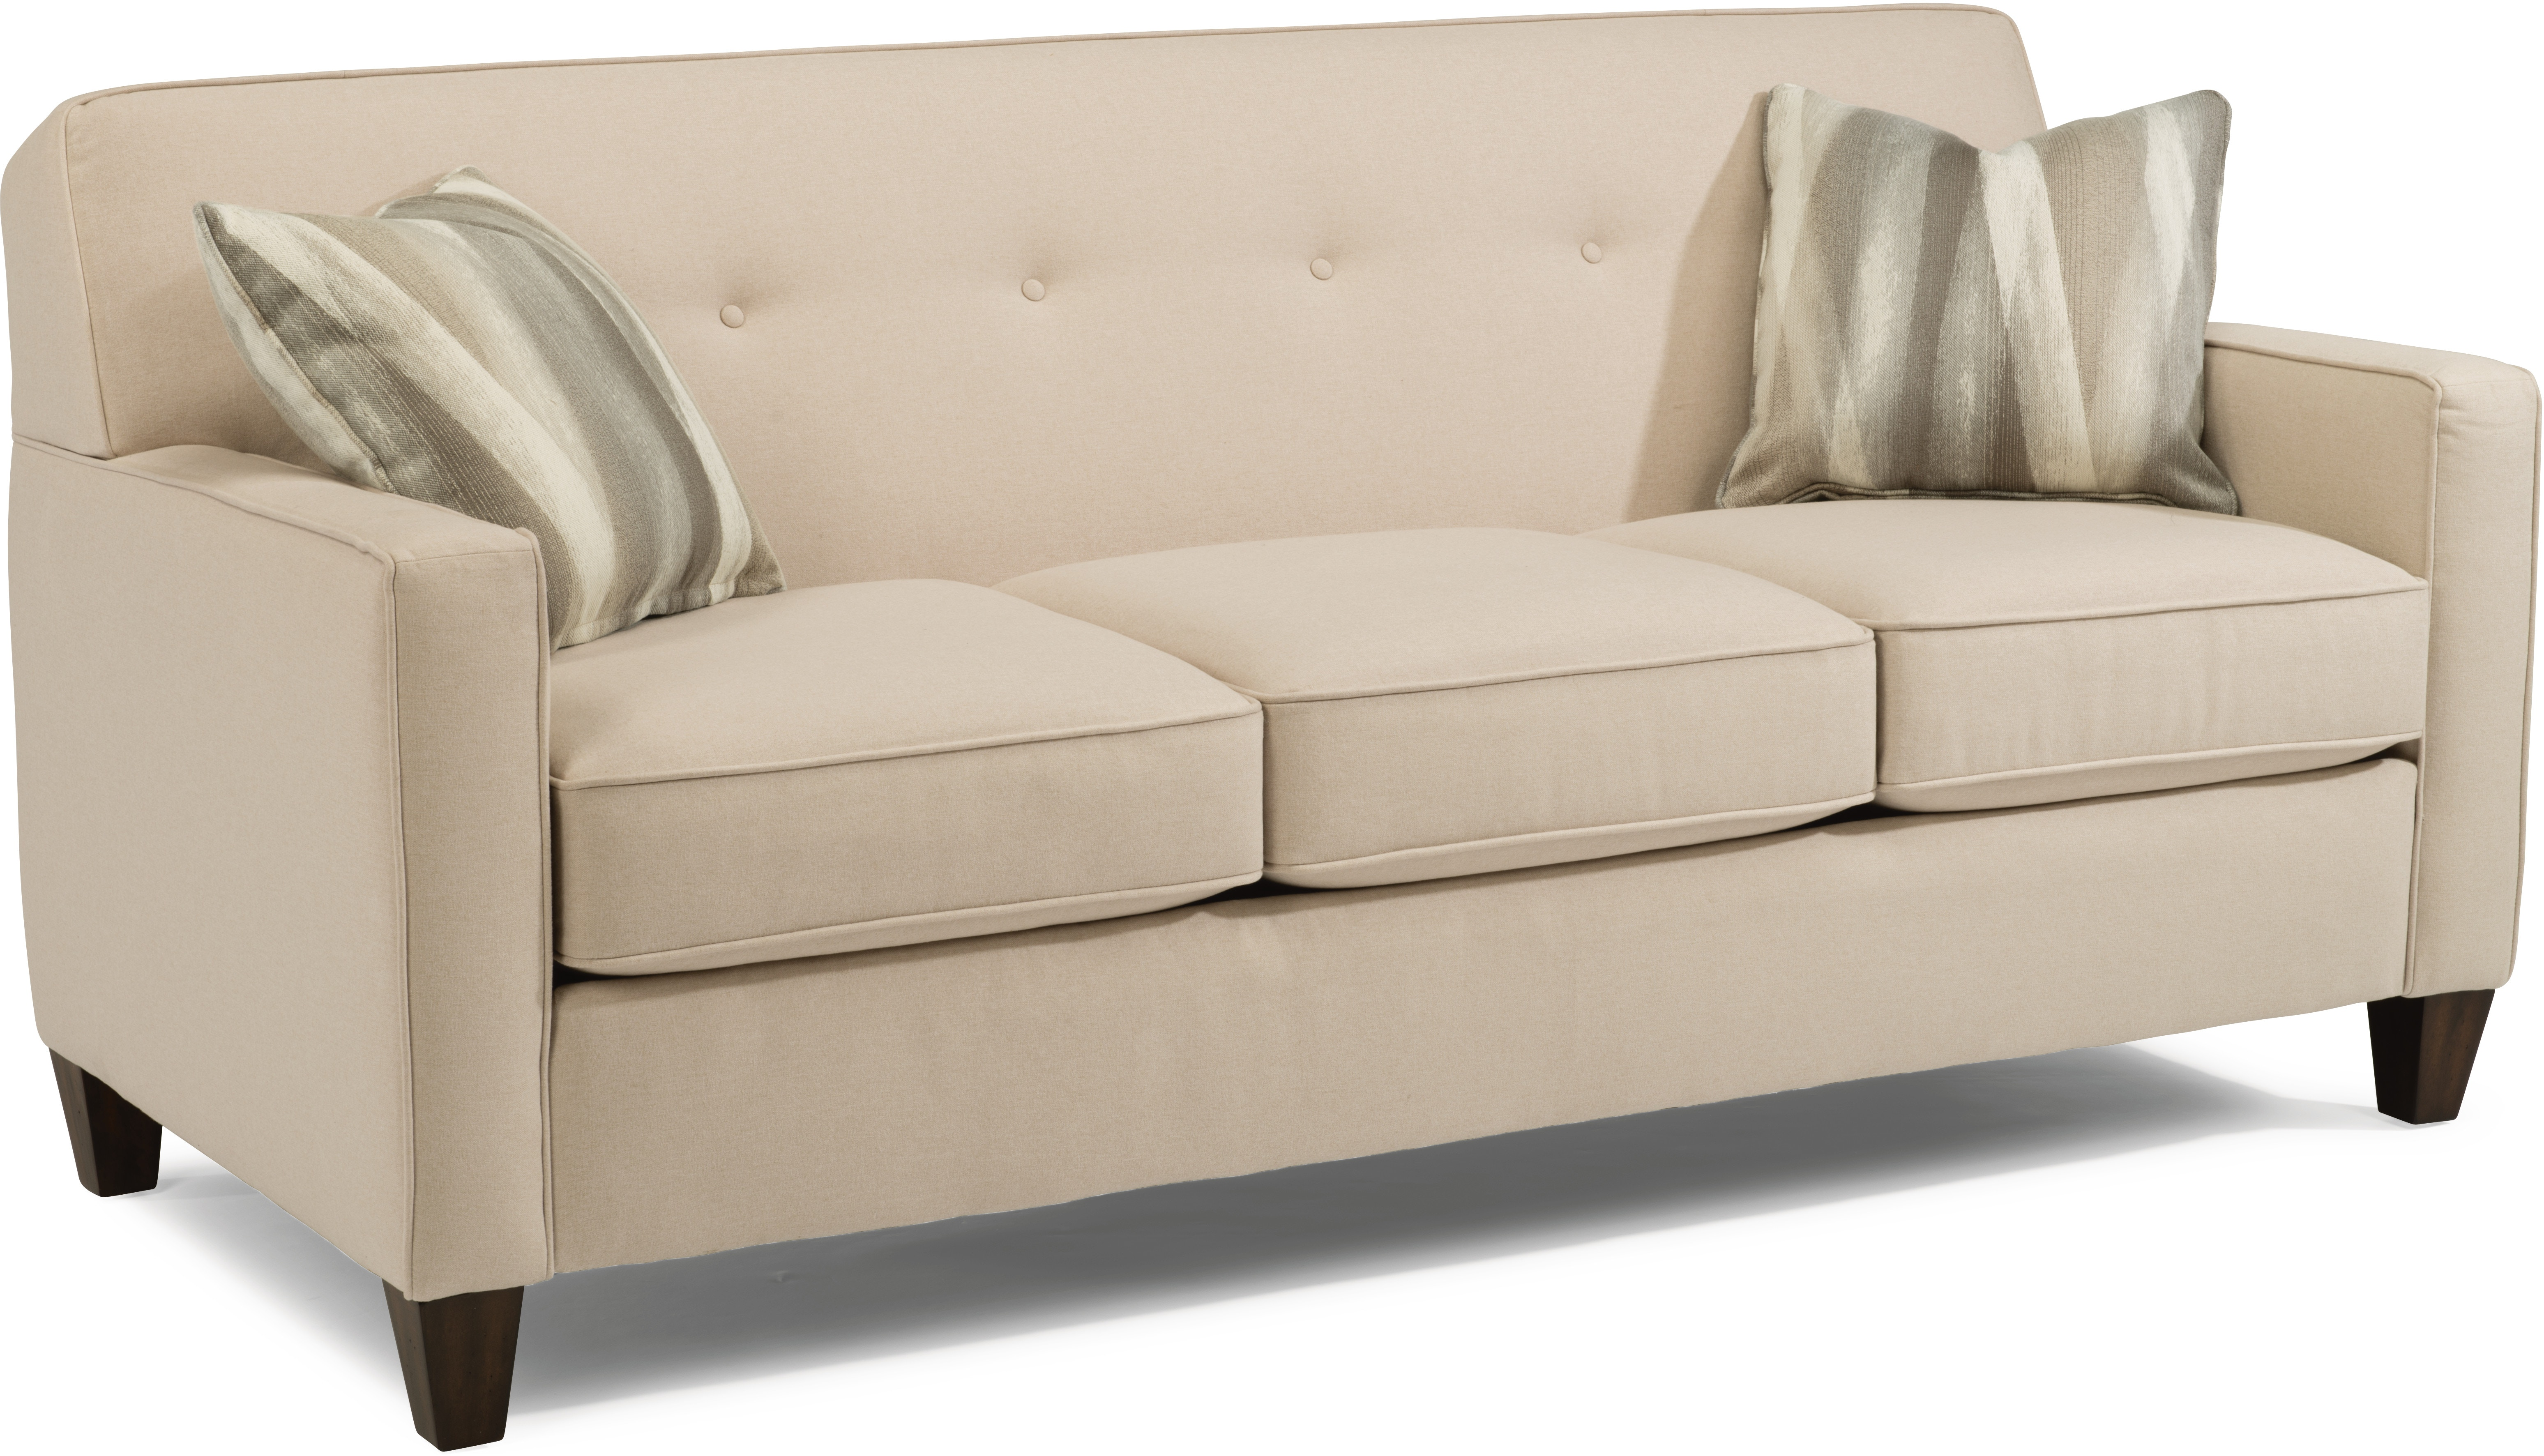 Flexsteel Sofas Woodley S Furniture Colorado Springs Fort  ~ Where To Buy Sofa Springs